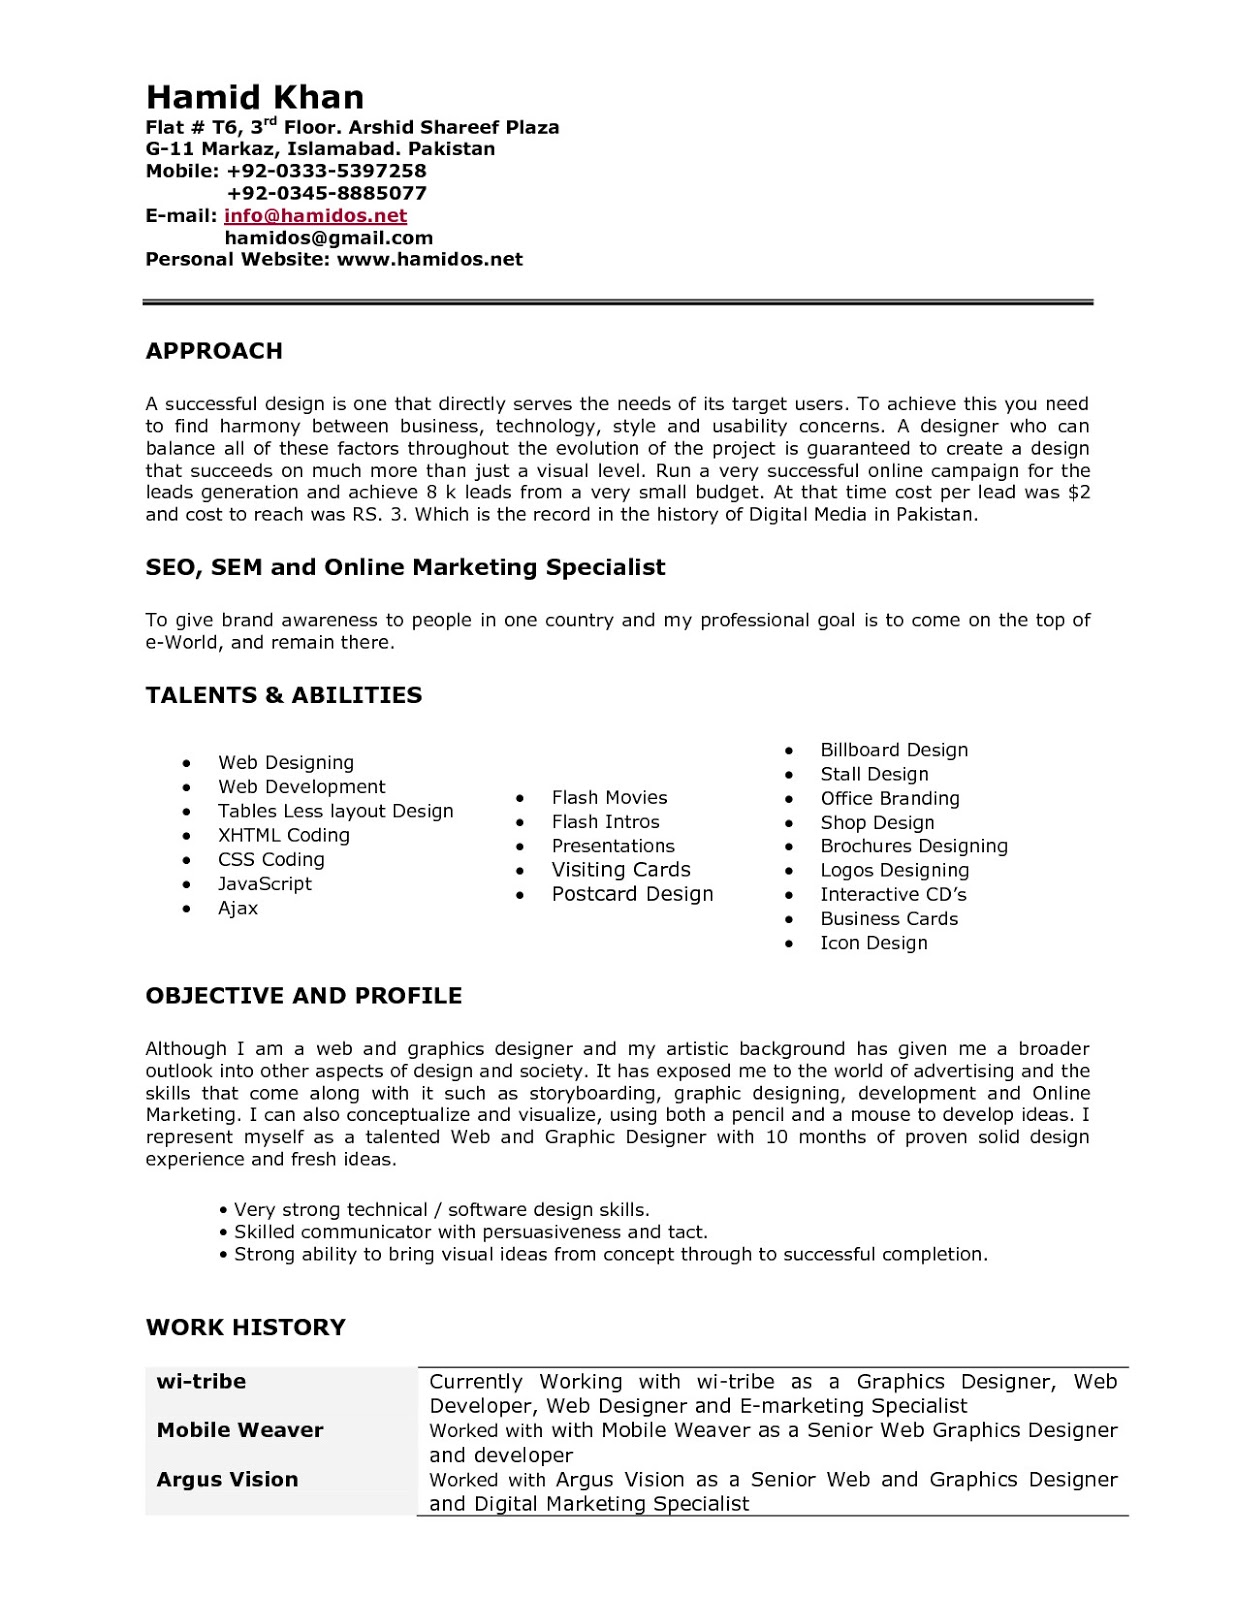 Graphic Designer Resume, graphic designer resume sample, graphic designer resume template, graphic designer resume pdf, graphic designer resume examples 2020, graphic designer resume format, graphic designer resume objective, graphic designer resume summary, graphic designer resume skills,